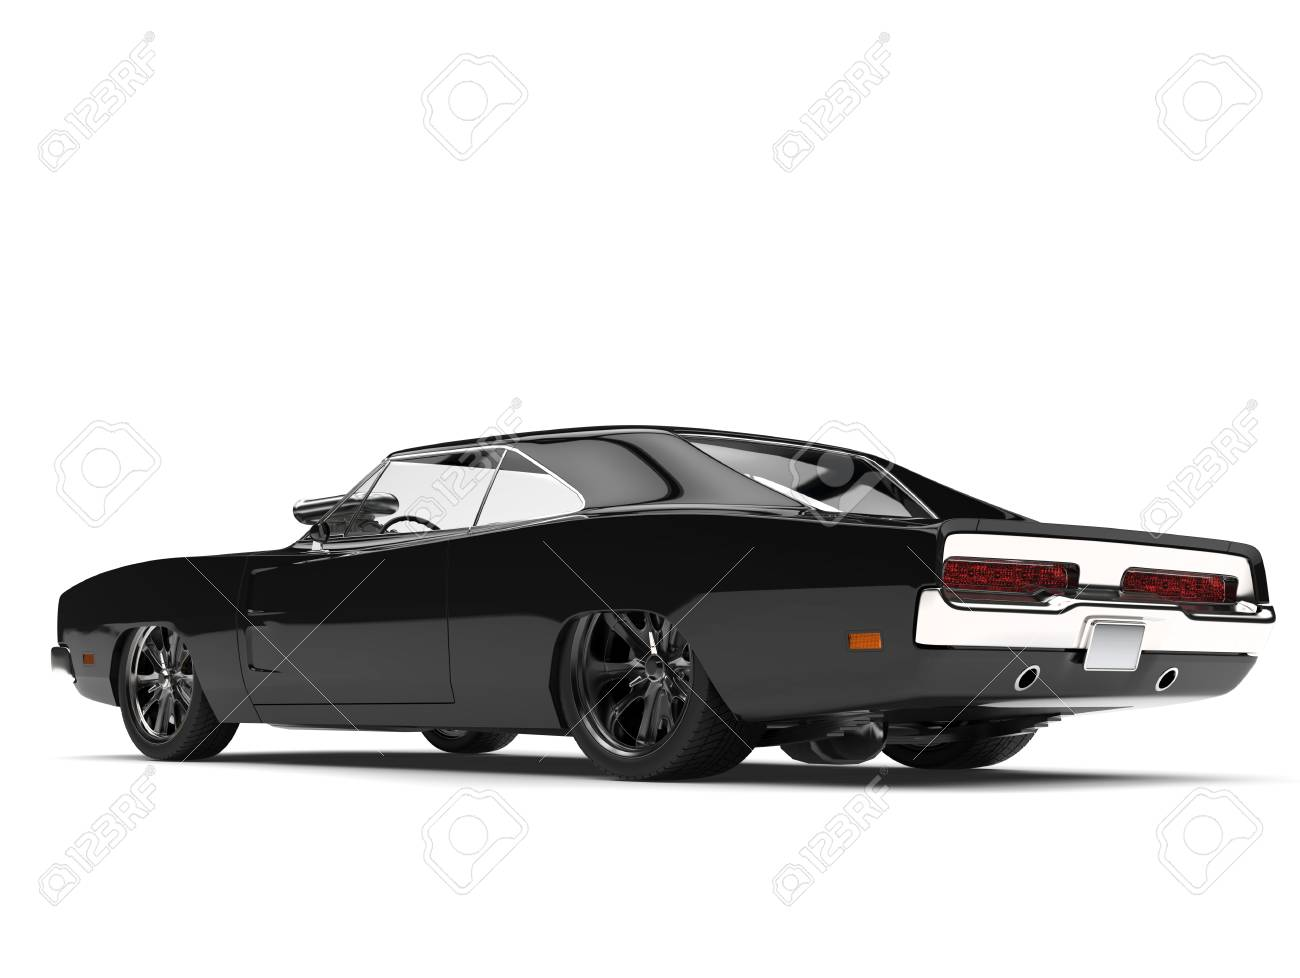 Pitch Black American Vintage Muscle Car Rear Side View Stock Photo